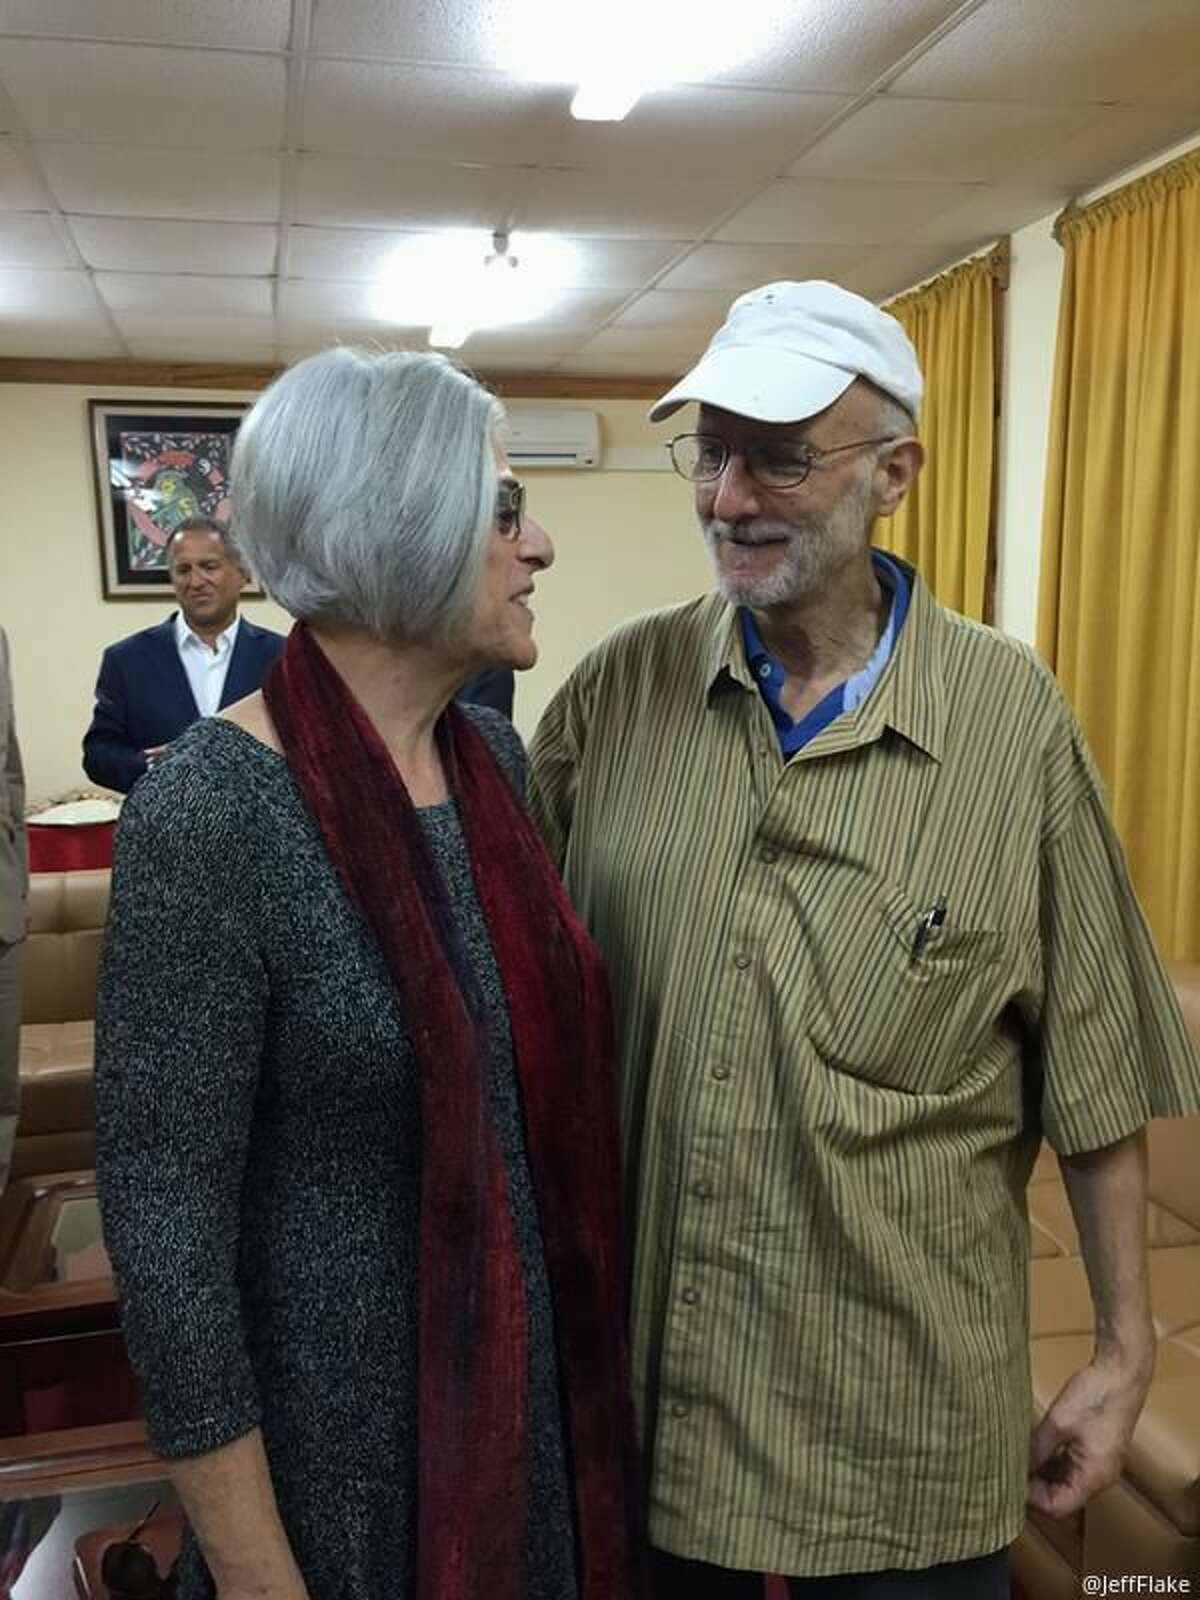 This handout photo from the Twitter account of Sen. Jeff Flake, R-Ariz. shows Alan Gross with his wife Judy before leaving Cuba, Wednesday, Dec. 17, 2014. The US and Cuba have agreed to re-establish diplomatic relations and open economic and travel ties, marking a historic shift in U.S. policy toward the communist island after a half-century of enmity dating back to the Cold War, American officials said Wednesday. The announcement came amid a series of sudden confidence-building measures between the longtime foes, including the release of American prisoner Alan Gross, as well as a swap for a U.S. intelligence asset held in Cuba and the freeing of three Cubans jailed in the U.S. (AP Photo/Jeff Flake)